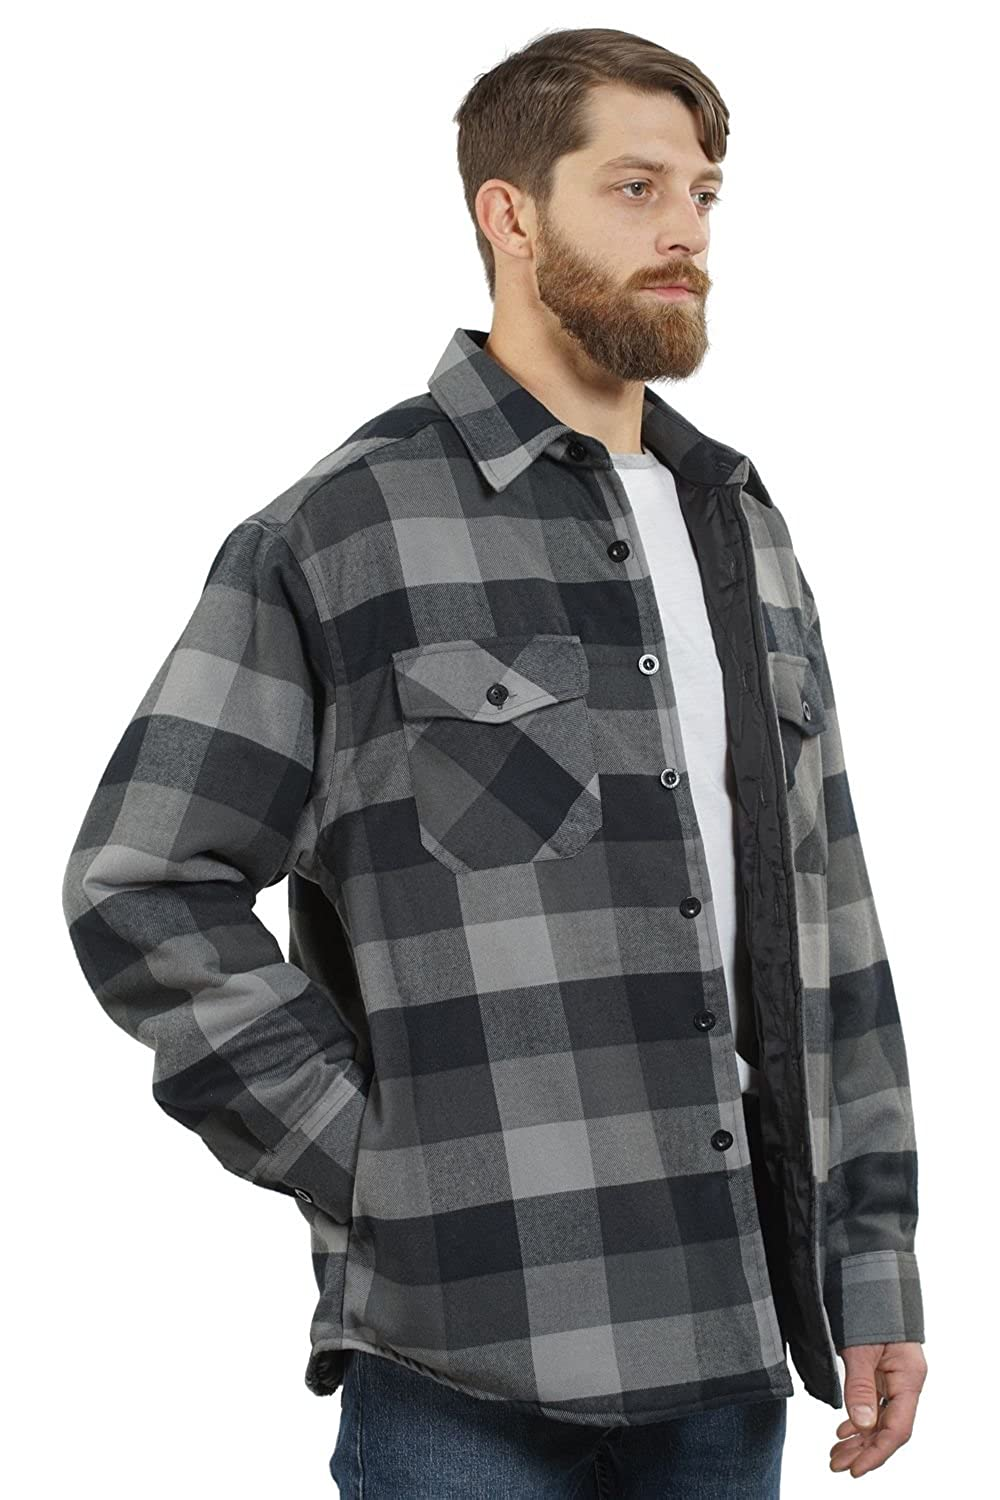 YAGO Mens Outdoor Quilted Lining Flannel Plaid Button Down Shirt Jacket with Side Pockets